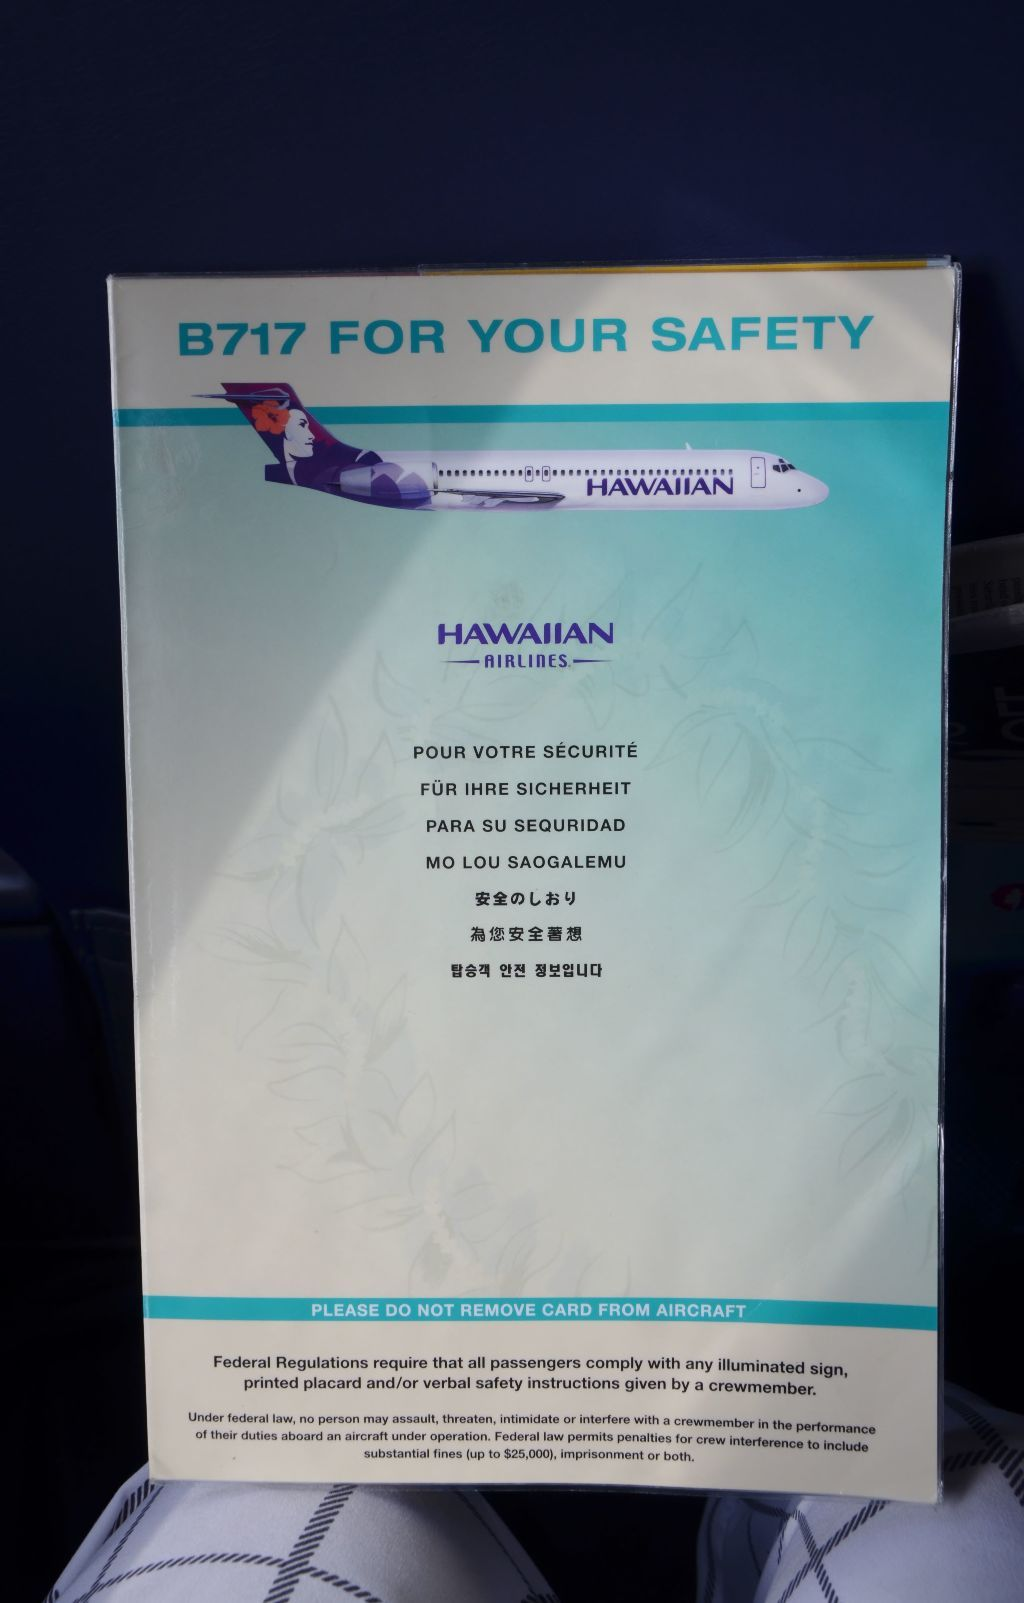 Hawaiian Airlines Boeing 717 200 First Class Cabin Safety Card Photos Hawaiian Airlines Fleet Airlines